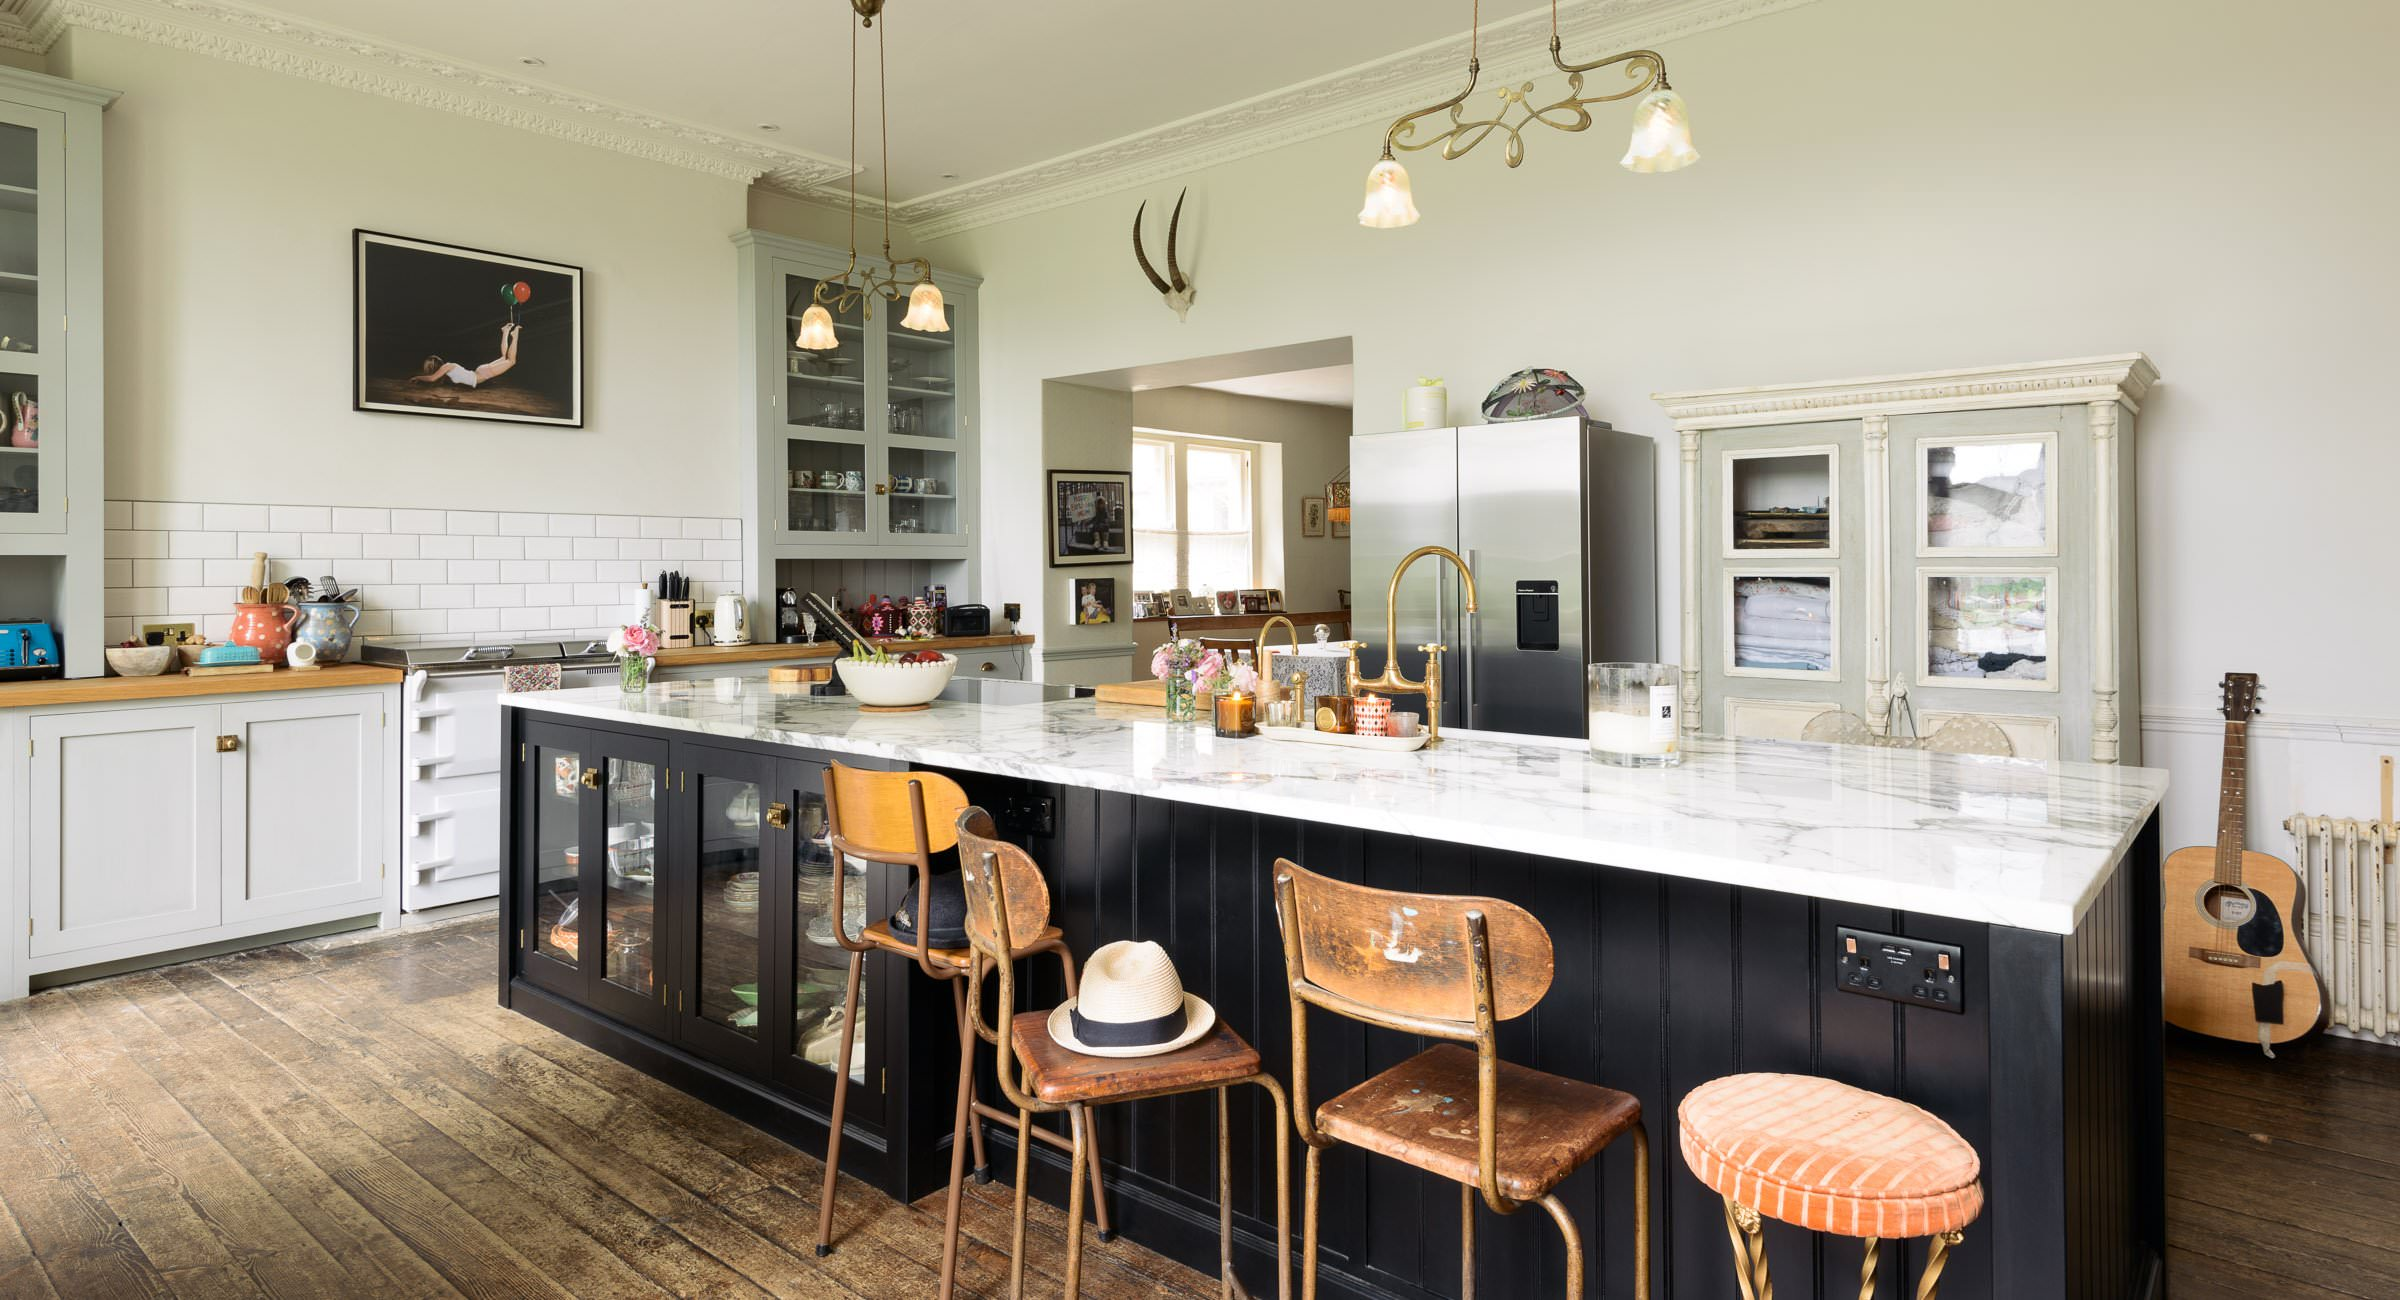 Kitchen Company British Kitchen Inspiration And My Inset Cabinet Infatuation